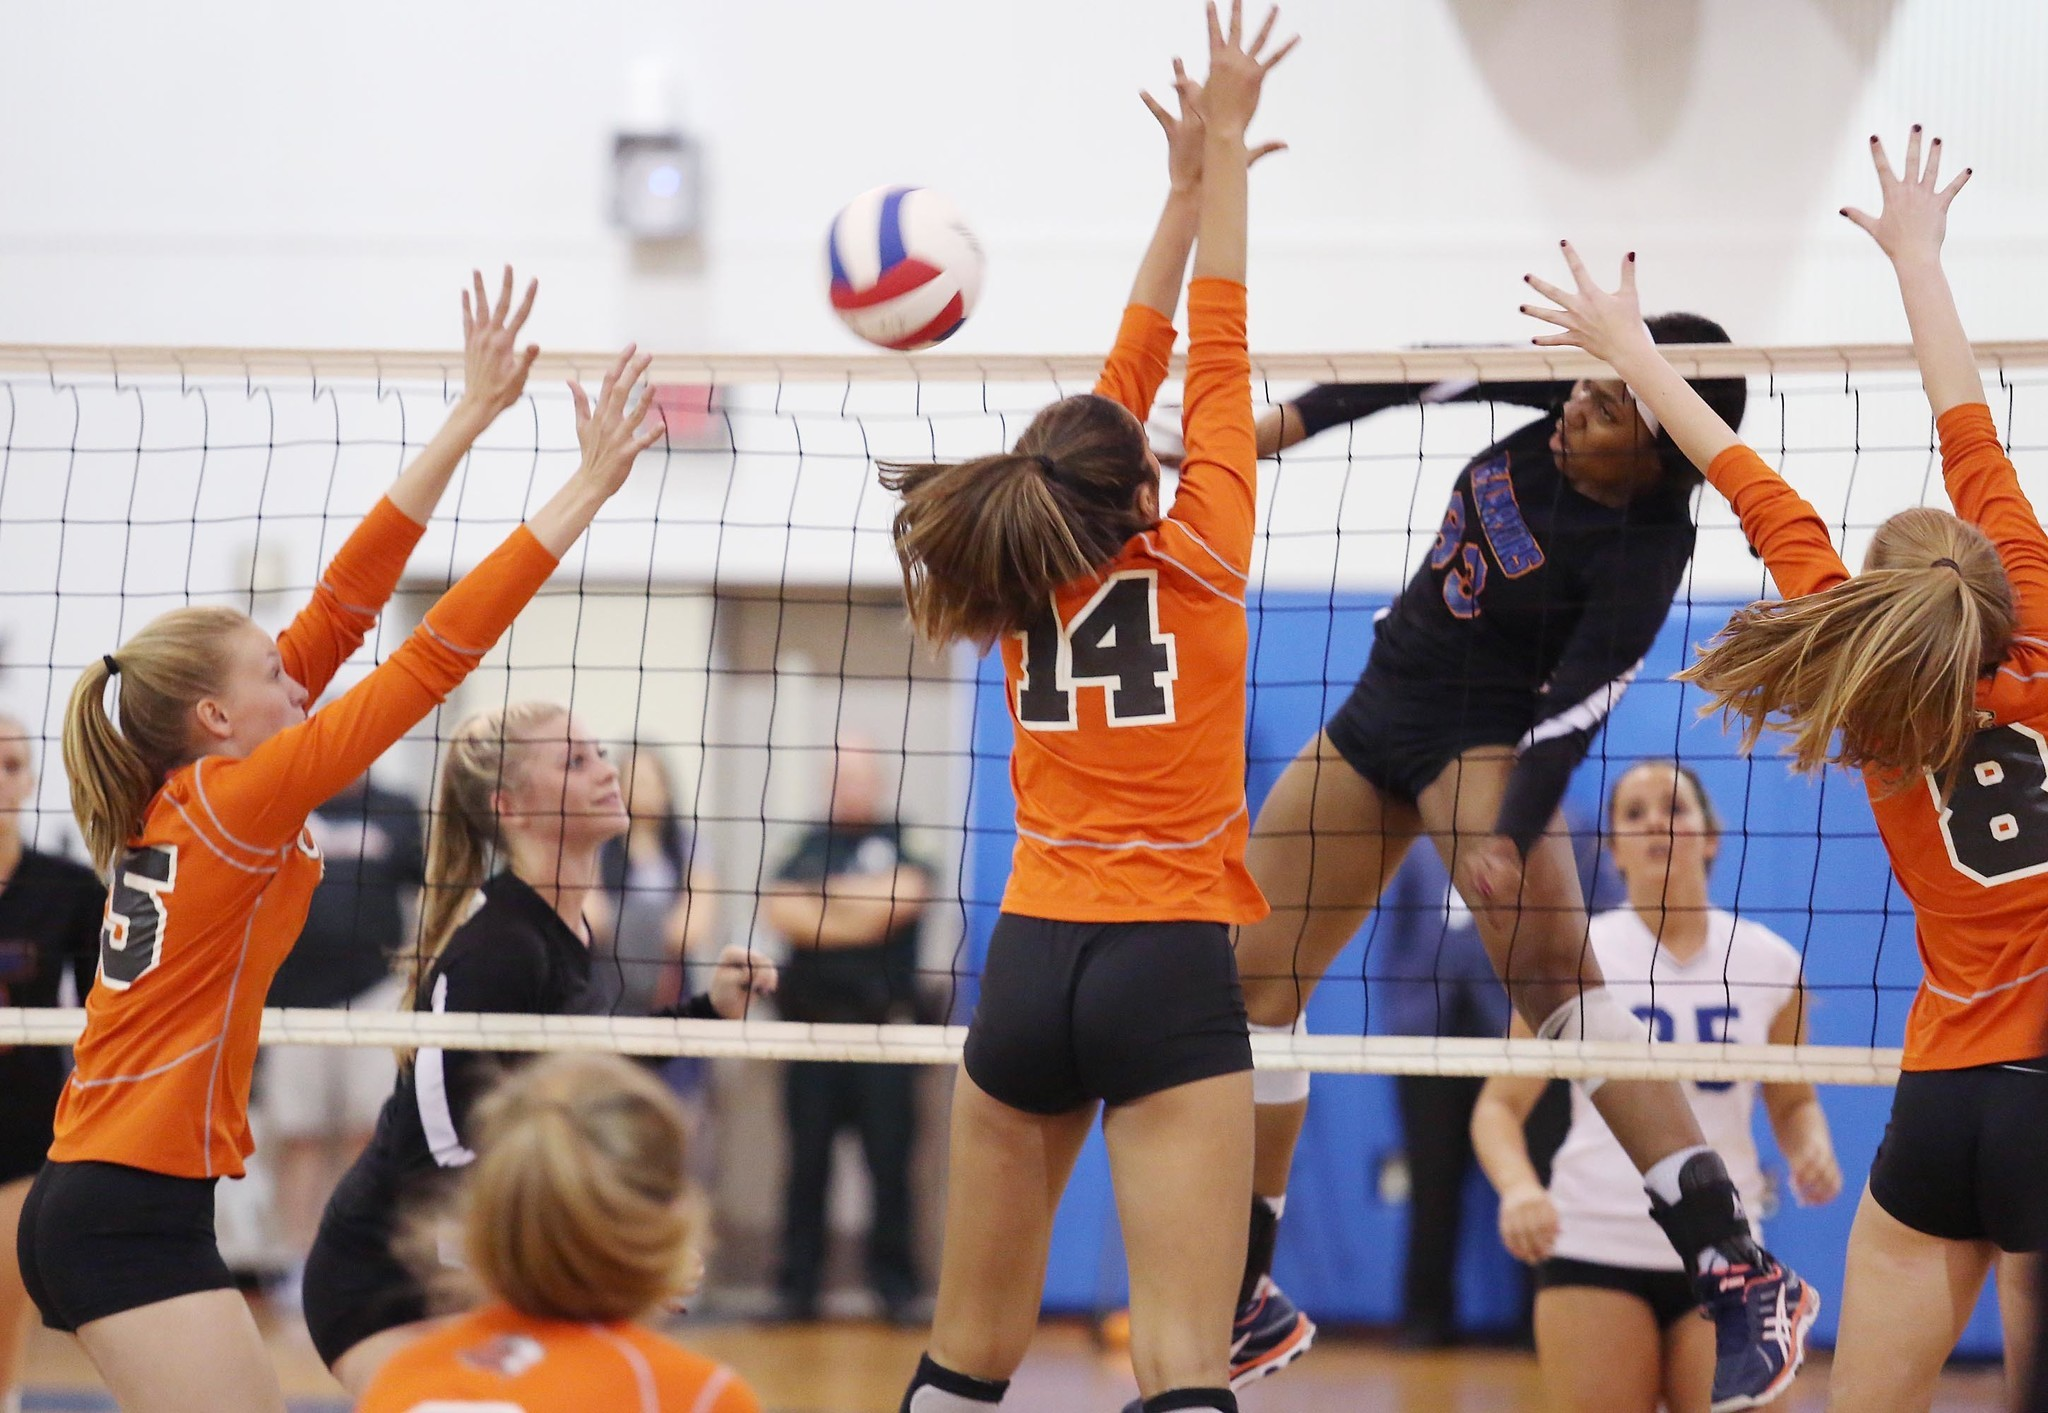 Pictures: 2016 H.S. Volleyball Season - Orlando Sentinel